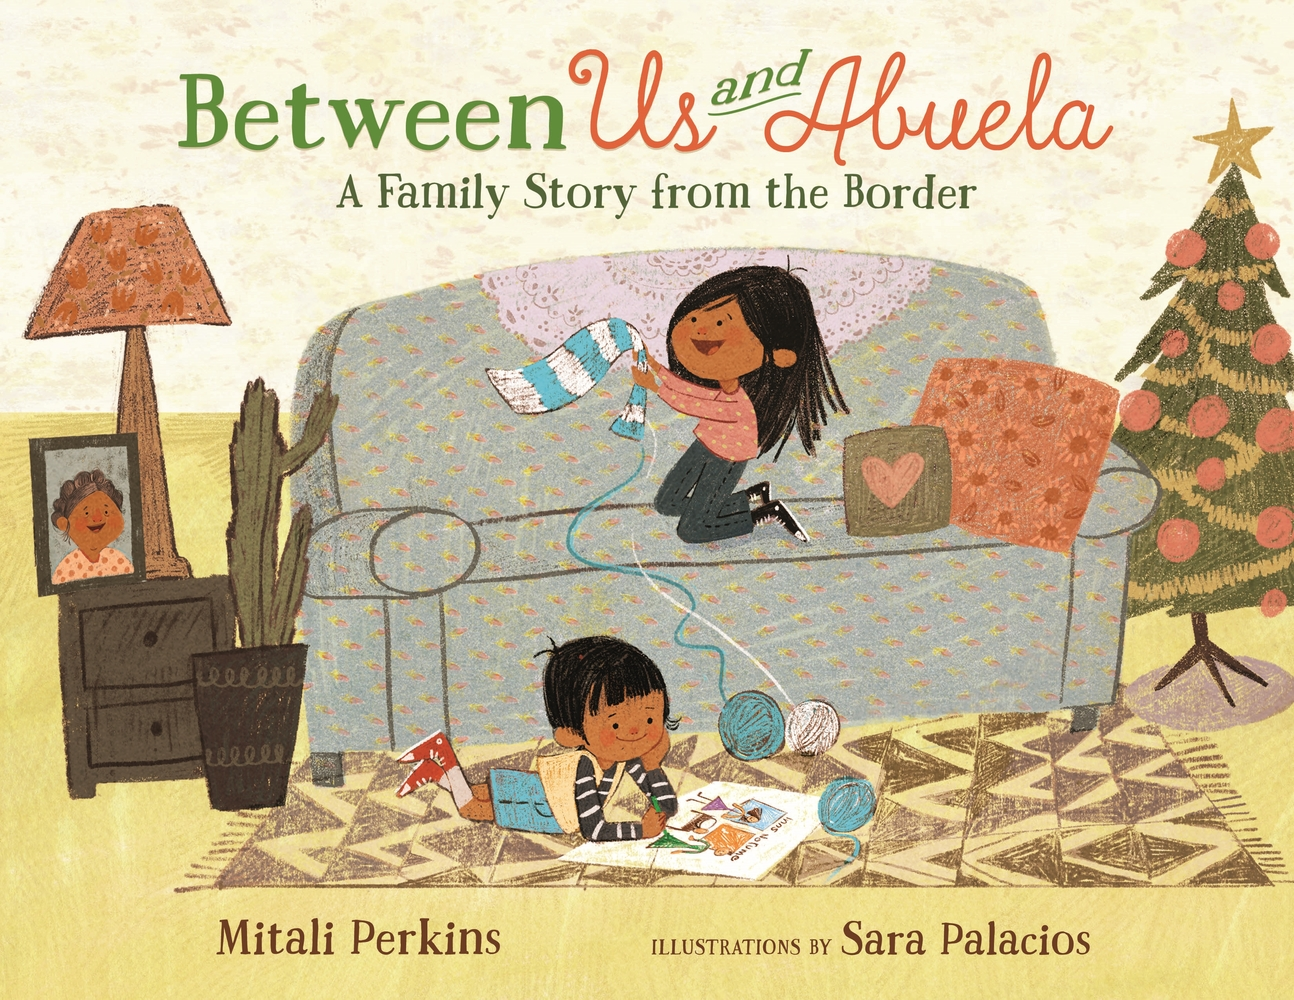 Cover of Between Us and Abuela depicting two children, one on a grey couch making a scarf and the other on a colorful rug, drawing.